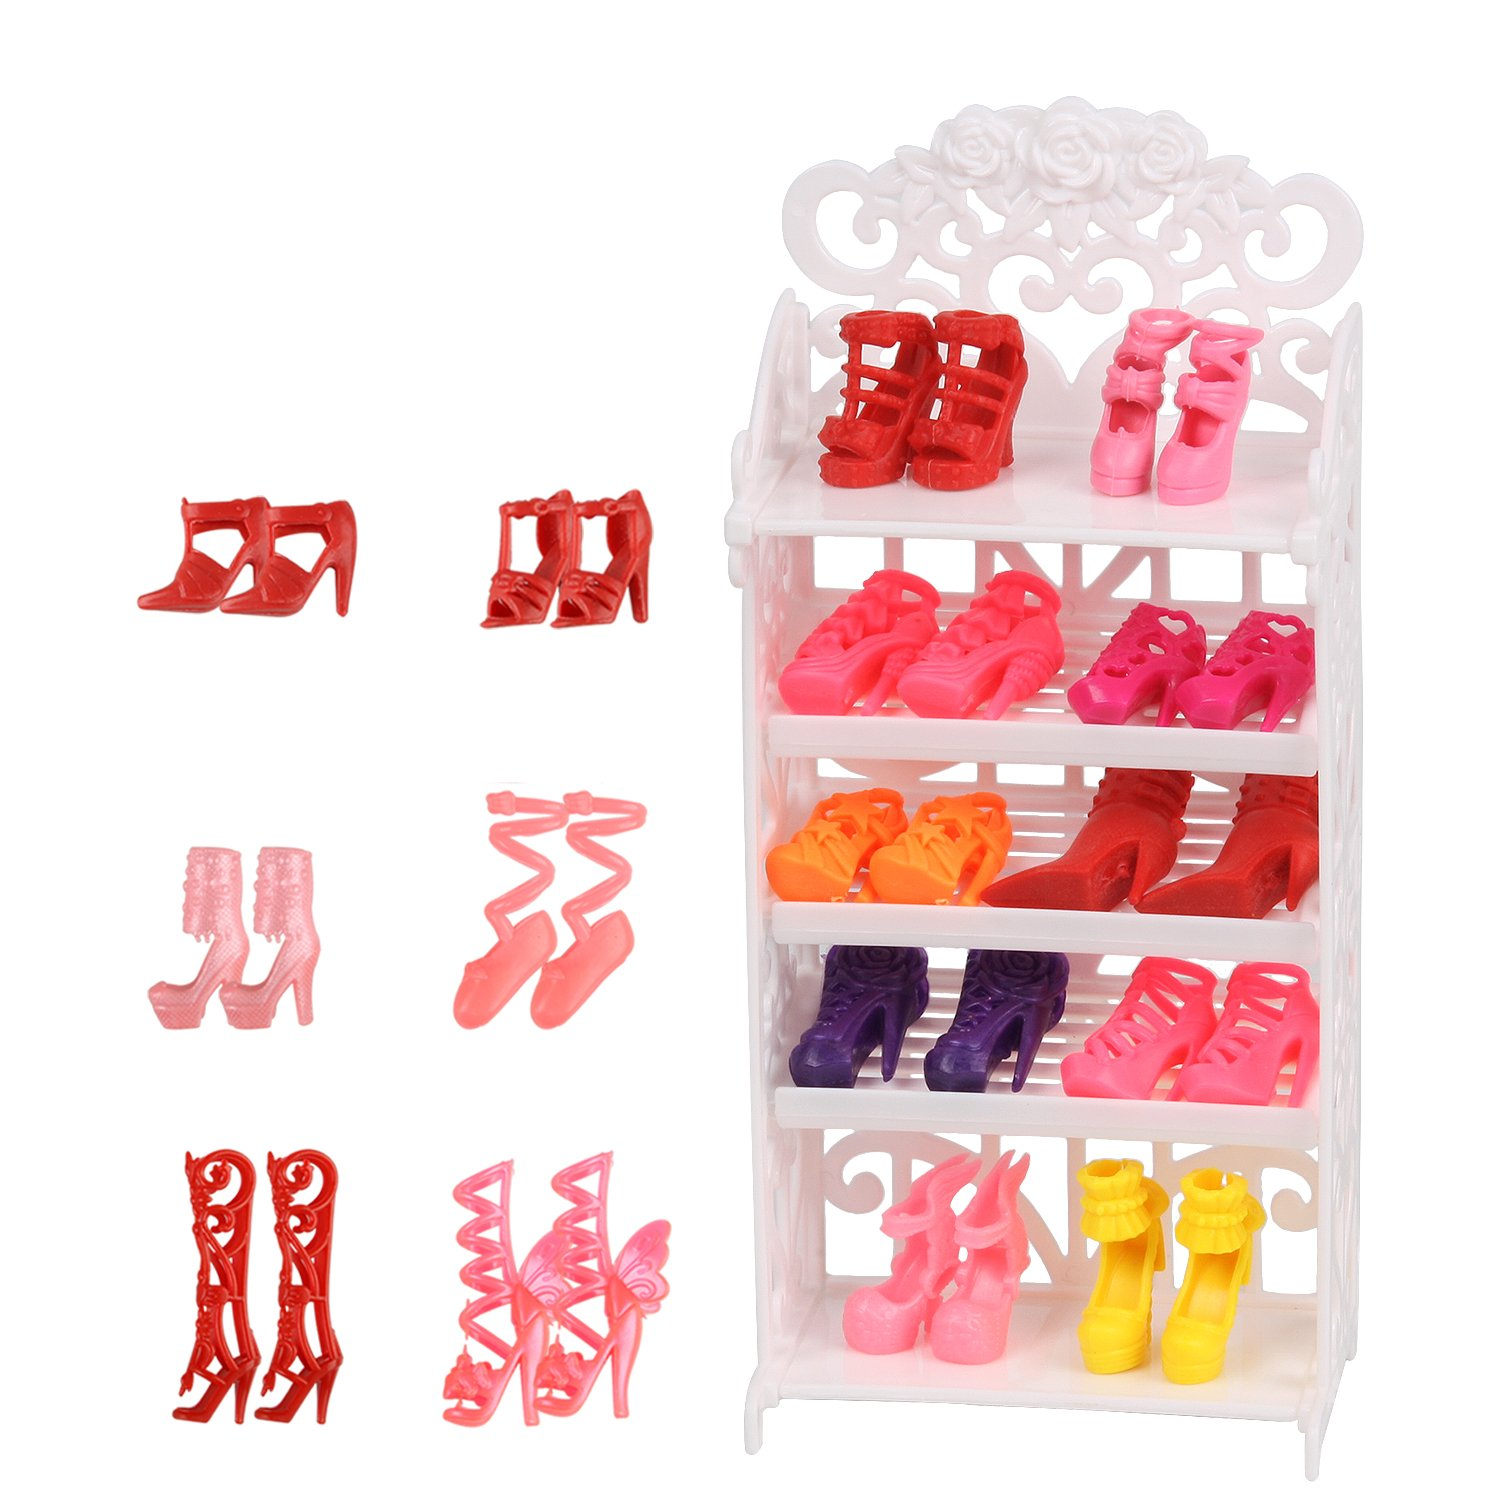 JING SHOW BUSSINESS Doll Shoes Rack Accessory + 16 Pairs Shoes for Doll Playset